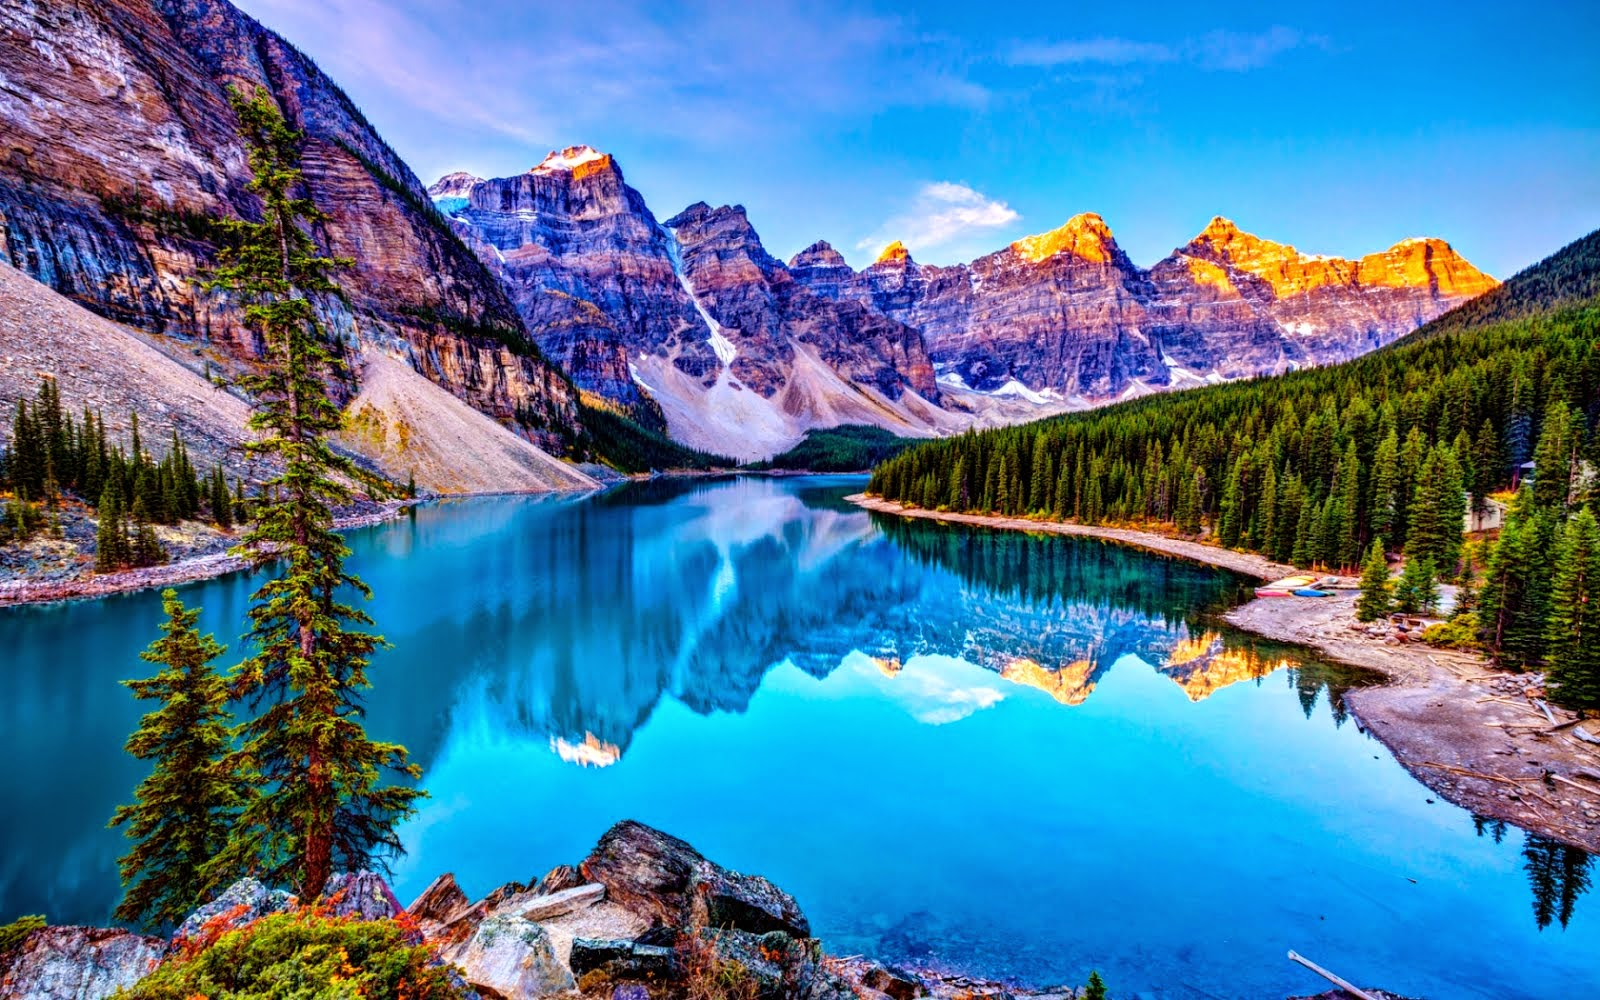 places natural amazing canada lake experience nature ten moraine holiday alberta peaks valley